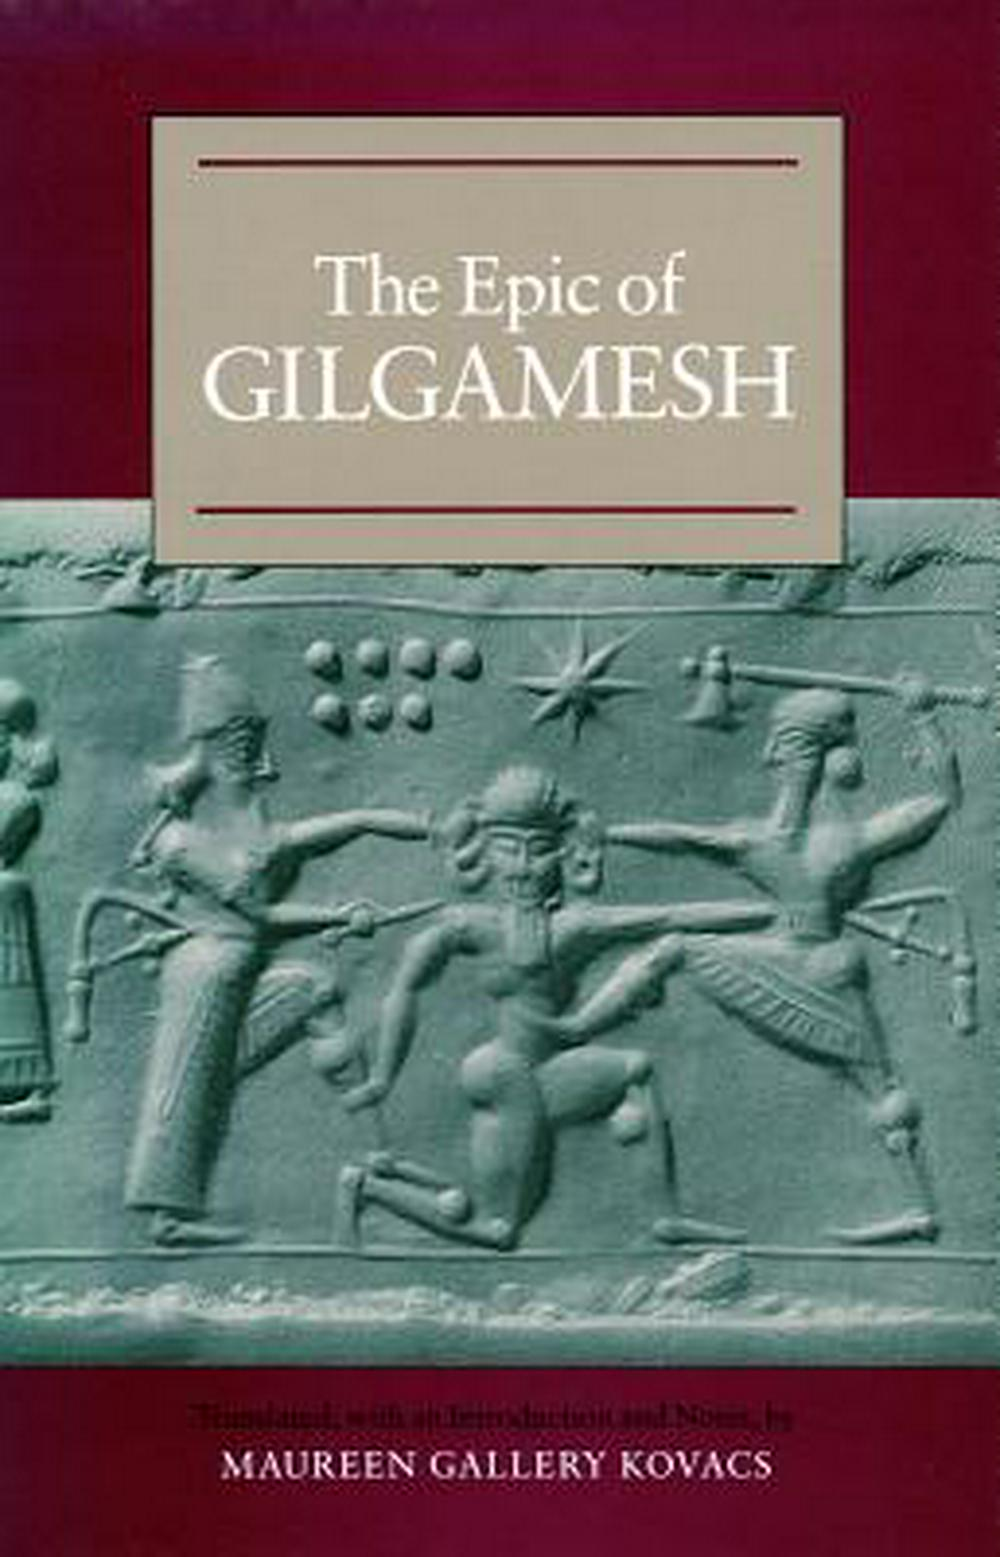 an introduction and an analysis of the epic of gilgamesh Introduction and passage introduction this is a very important part of the epic of gilgamesh the epic of gilgamesh character analysis.